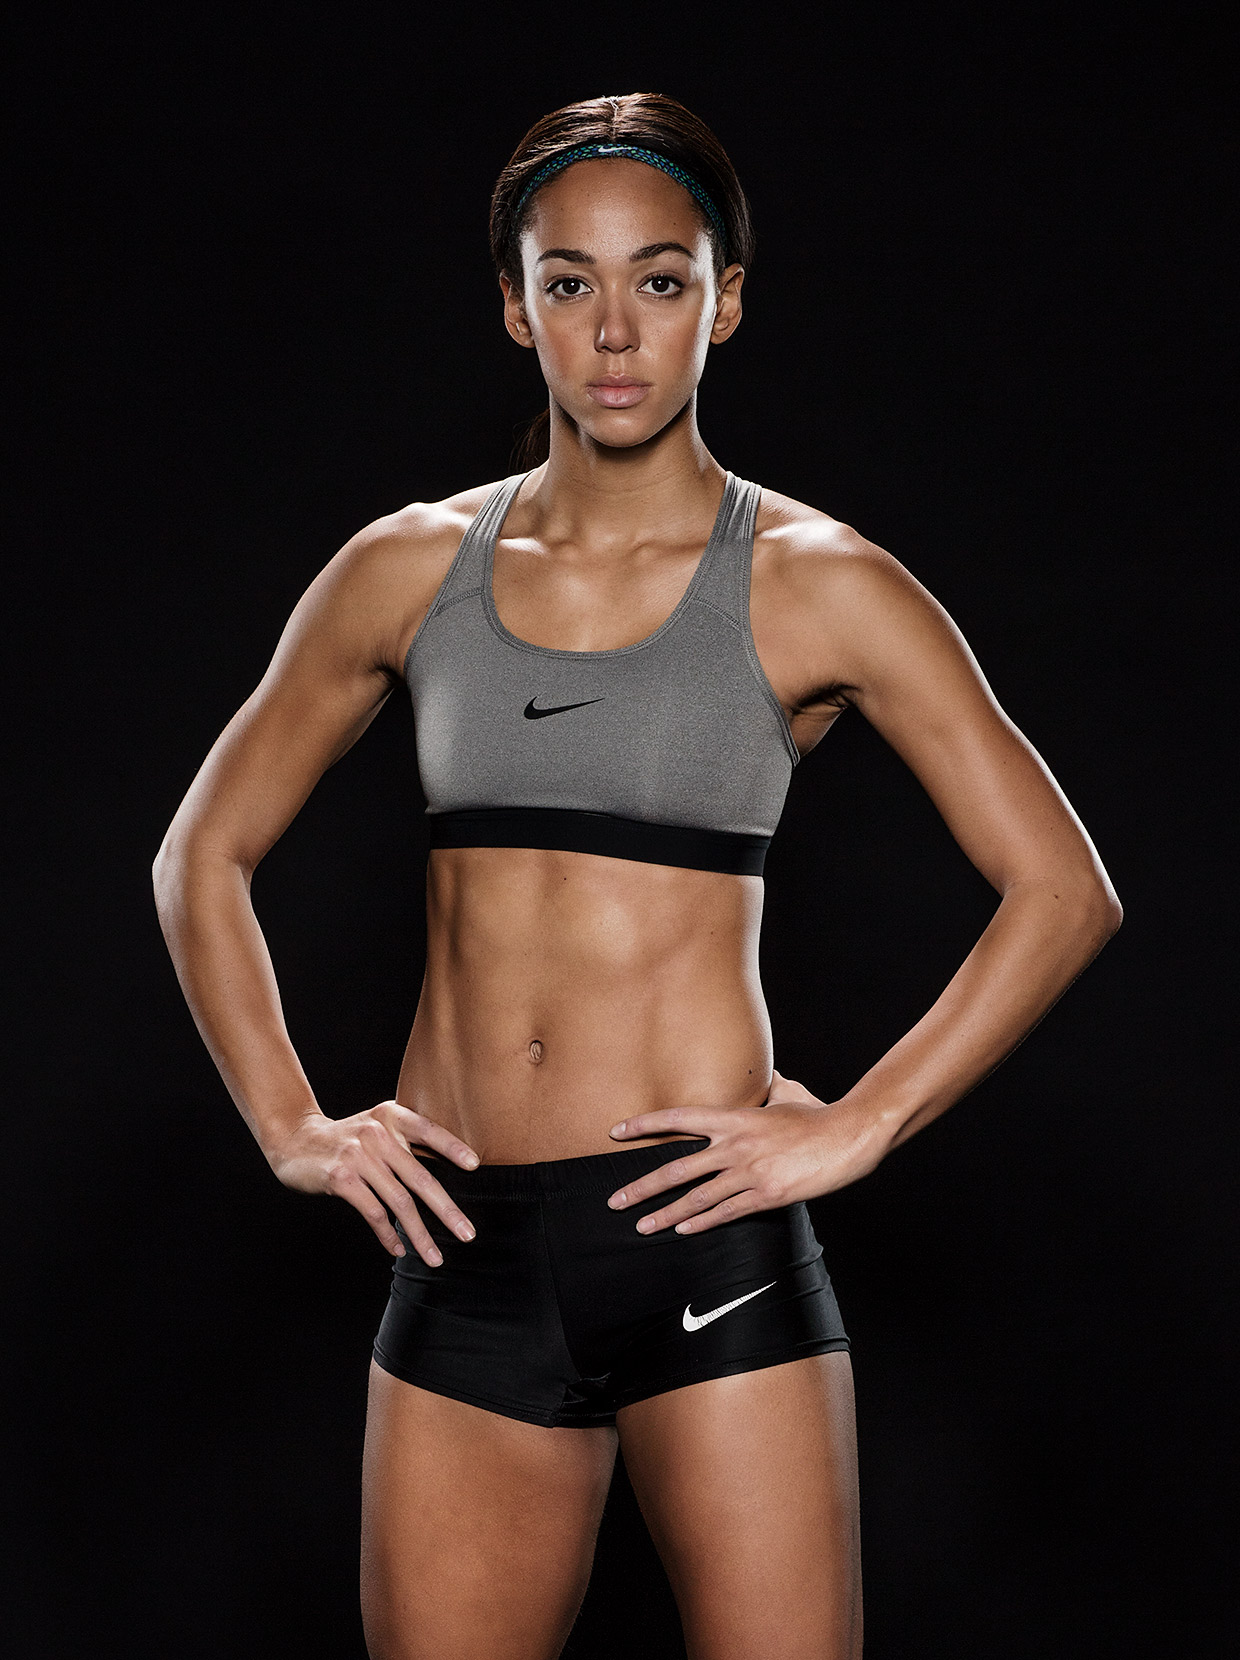 SIS-Katarina-Johnson-Thompson-0812_crop3